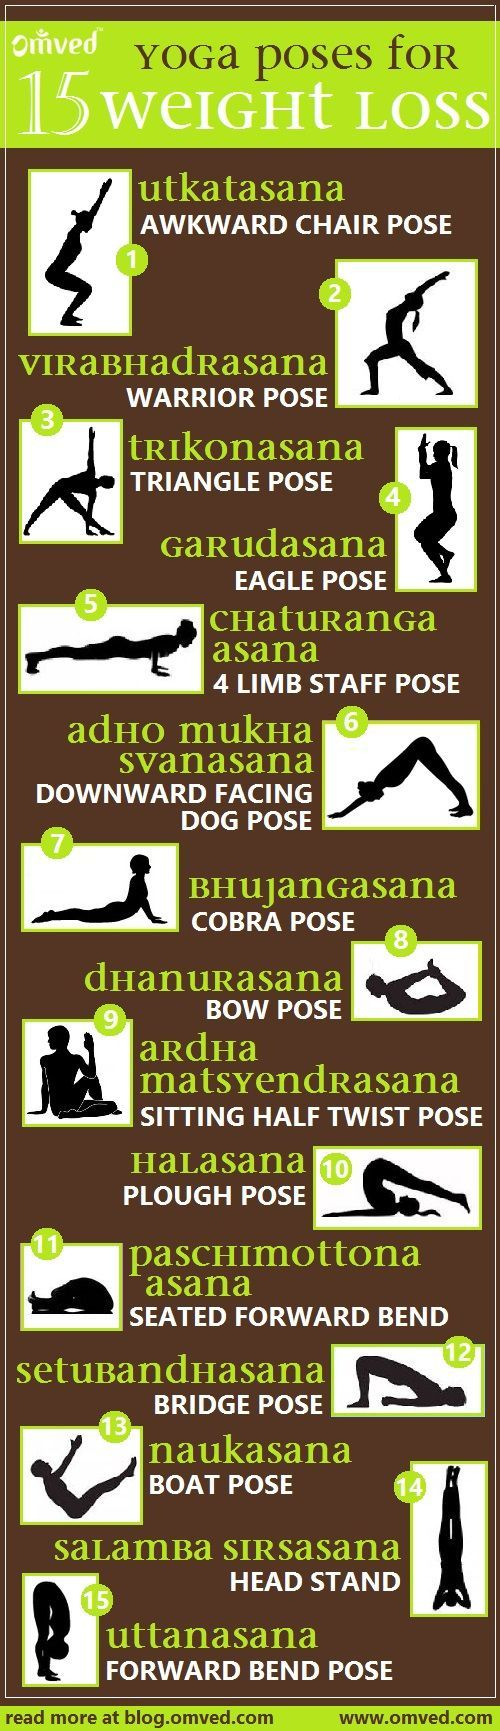 Top 15 #yoga poses for #WEIGHTLOSS - Although Yoga is not always the popular choice for serious fat burning or weight loss, yet it is an extremely effective tool specially for fighting stubborn fat stores. Yoga offers a well-balanced fitness routine that increases flexibility and boosts muscle strength. Yoga is a mind-body exercise that on your weight loss journey can help you shed pounds, and definitely keep you from gaining weight. Try these fat-burning poses today!